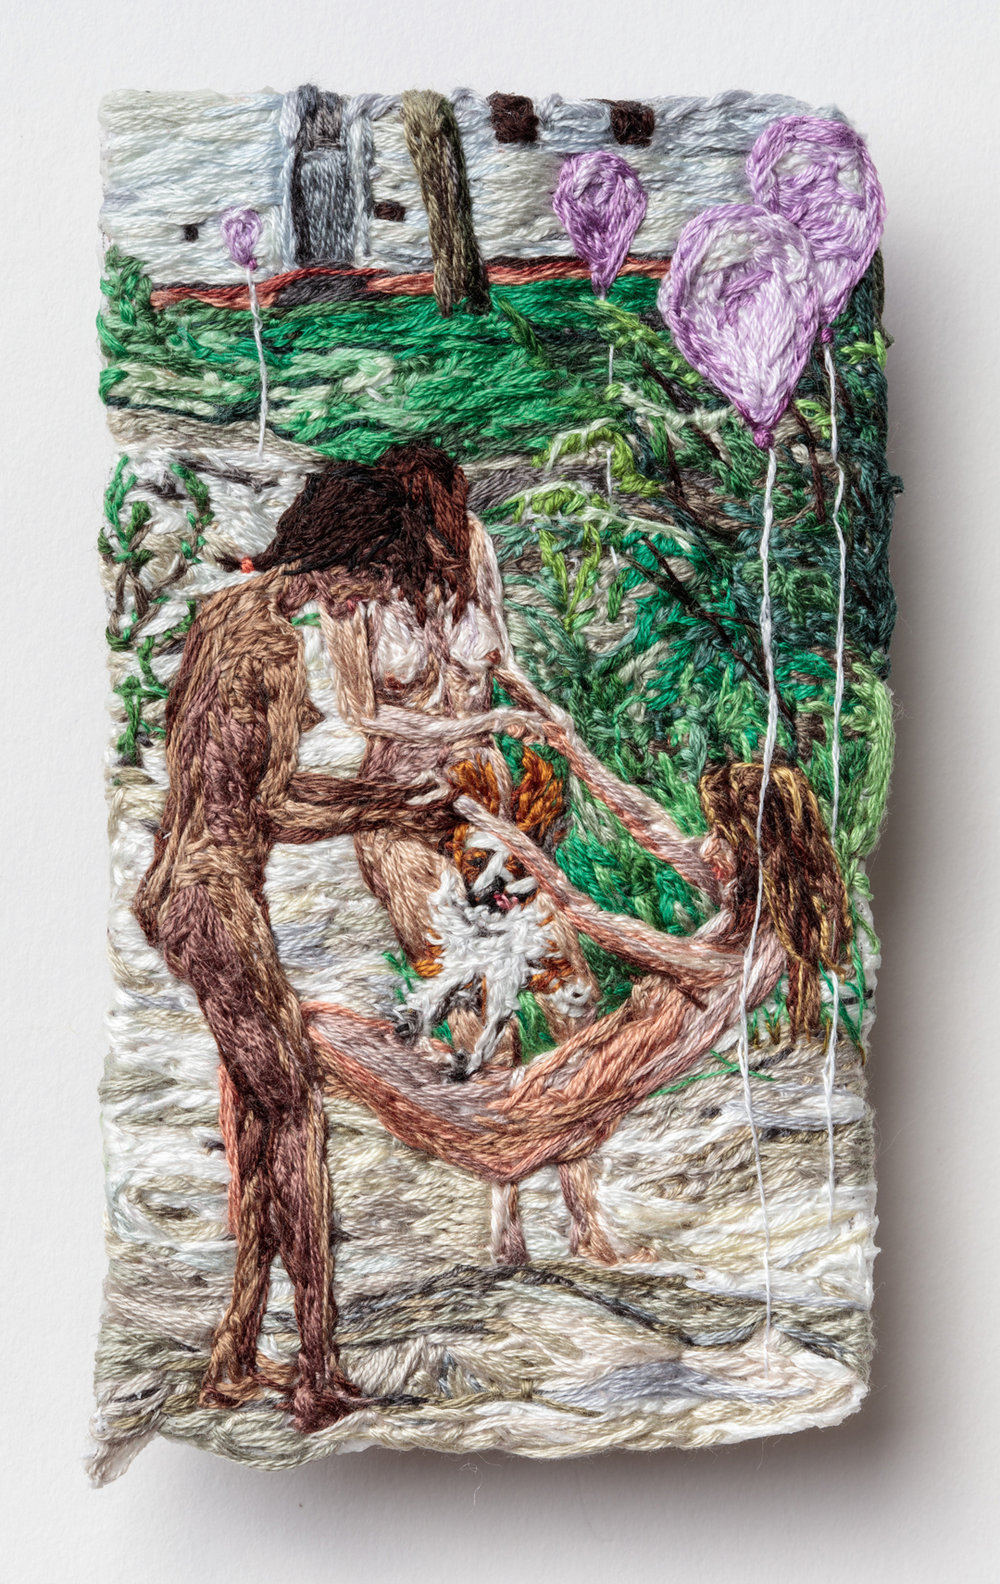 Puppy Tricks , Sophia Narrett, 2017, Embroidery Thread and Fabric, 5 x 3